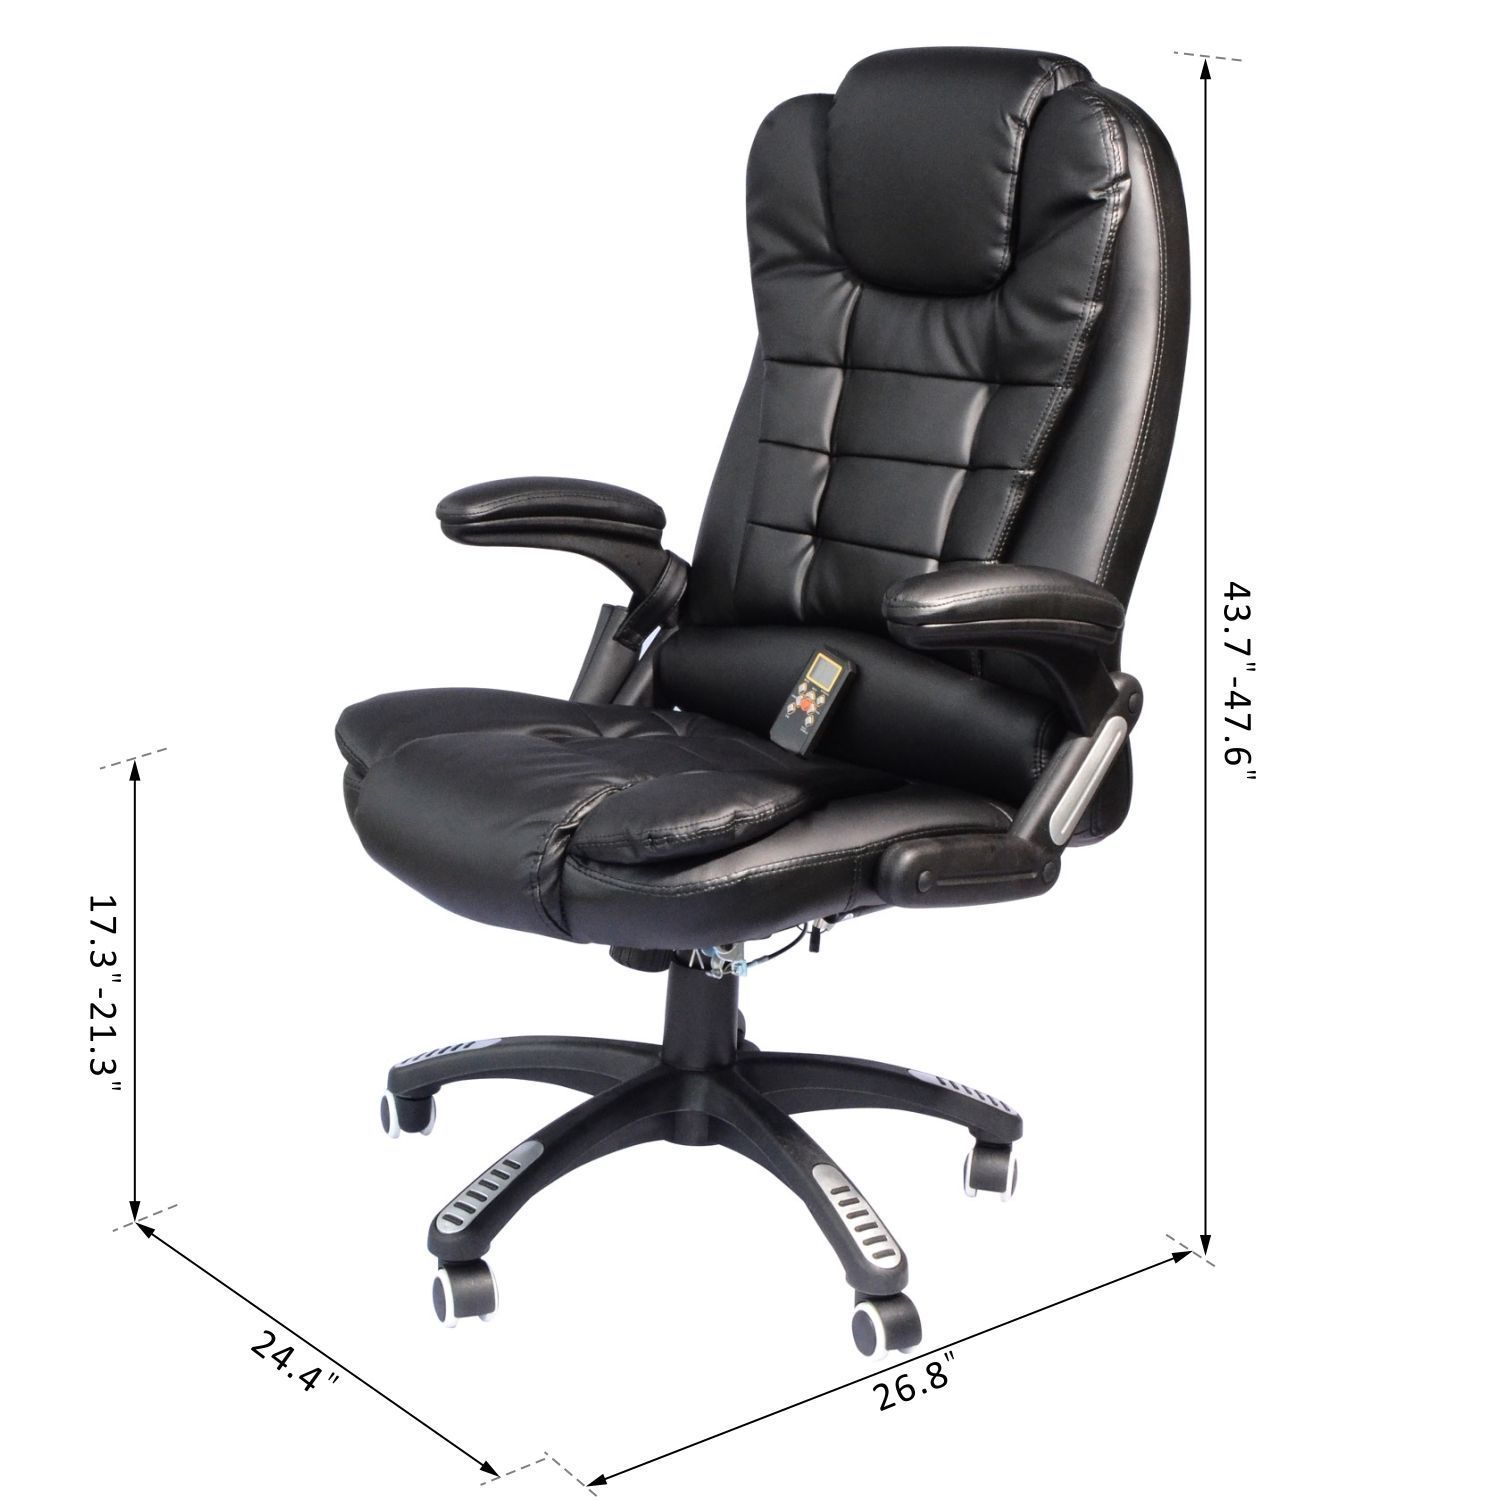 Heated Vibrating Massage Office Chair Recliner Swivel w/ Remote Control